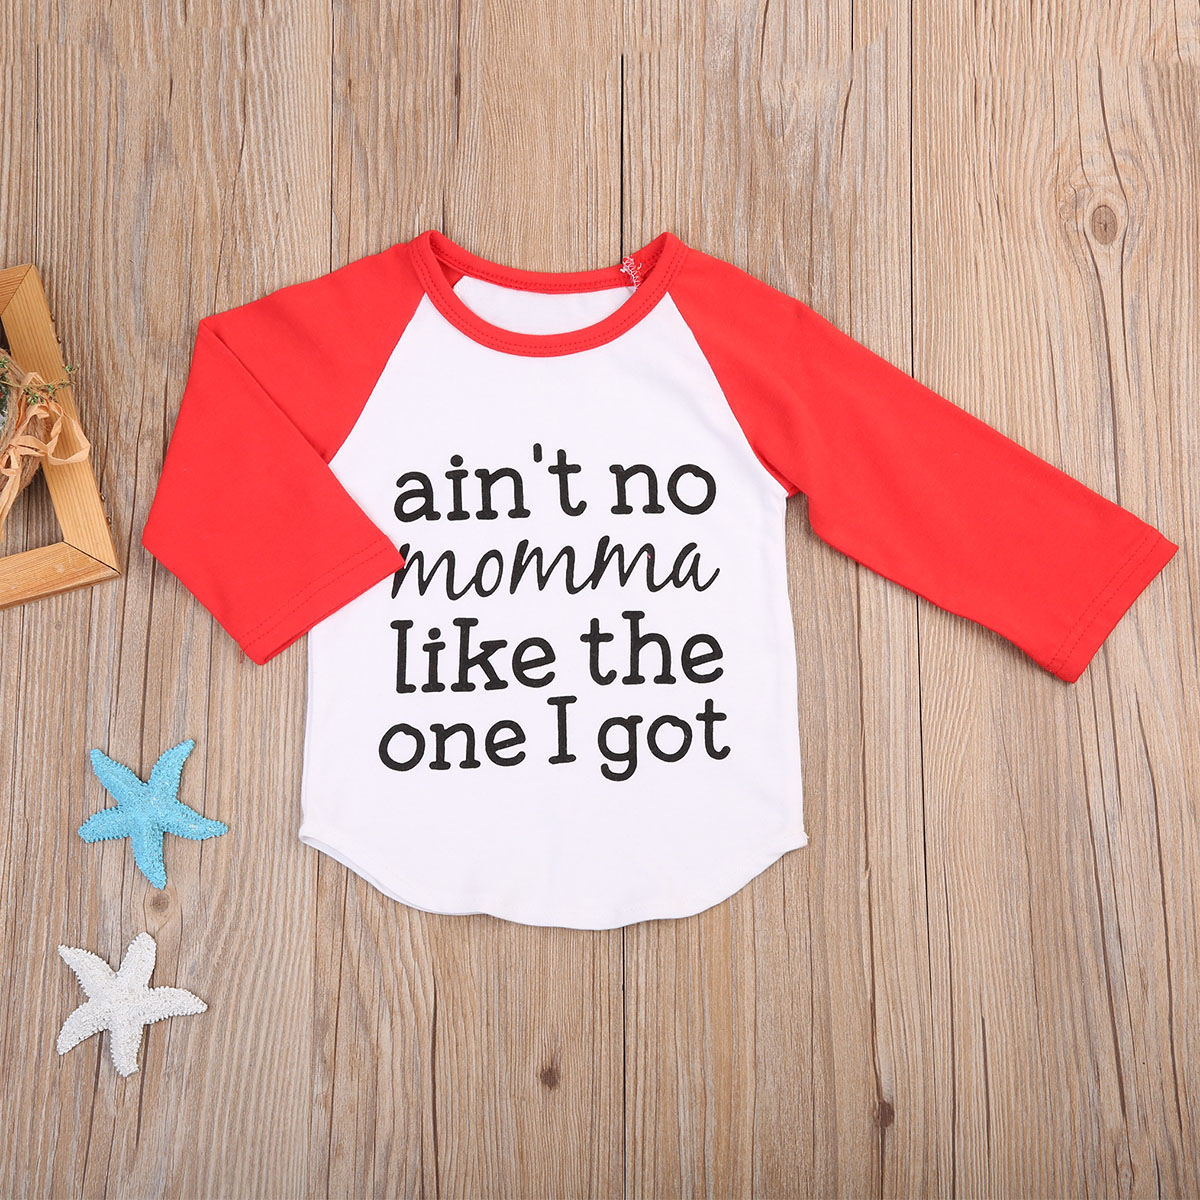 Girls' Baby Clothing Tees Autumn Newborn Baby Boy Lettering Long Sleeve T-shirt Tops Letter Print Cotton Clothes Outfit To Ensure A Like-New Appearance Indefinably